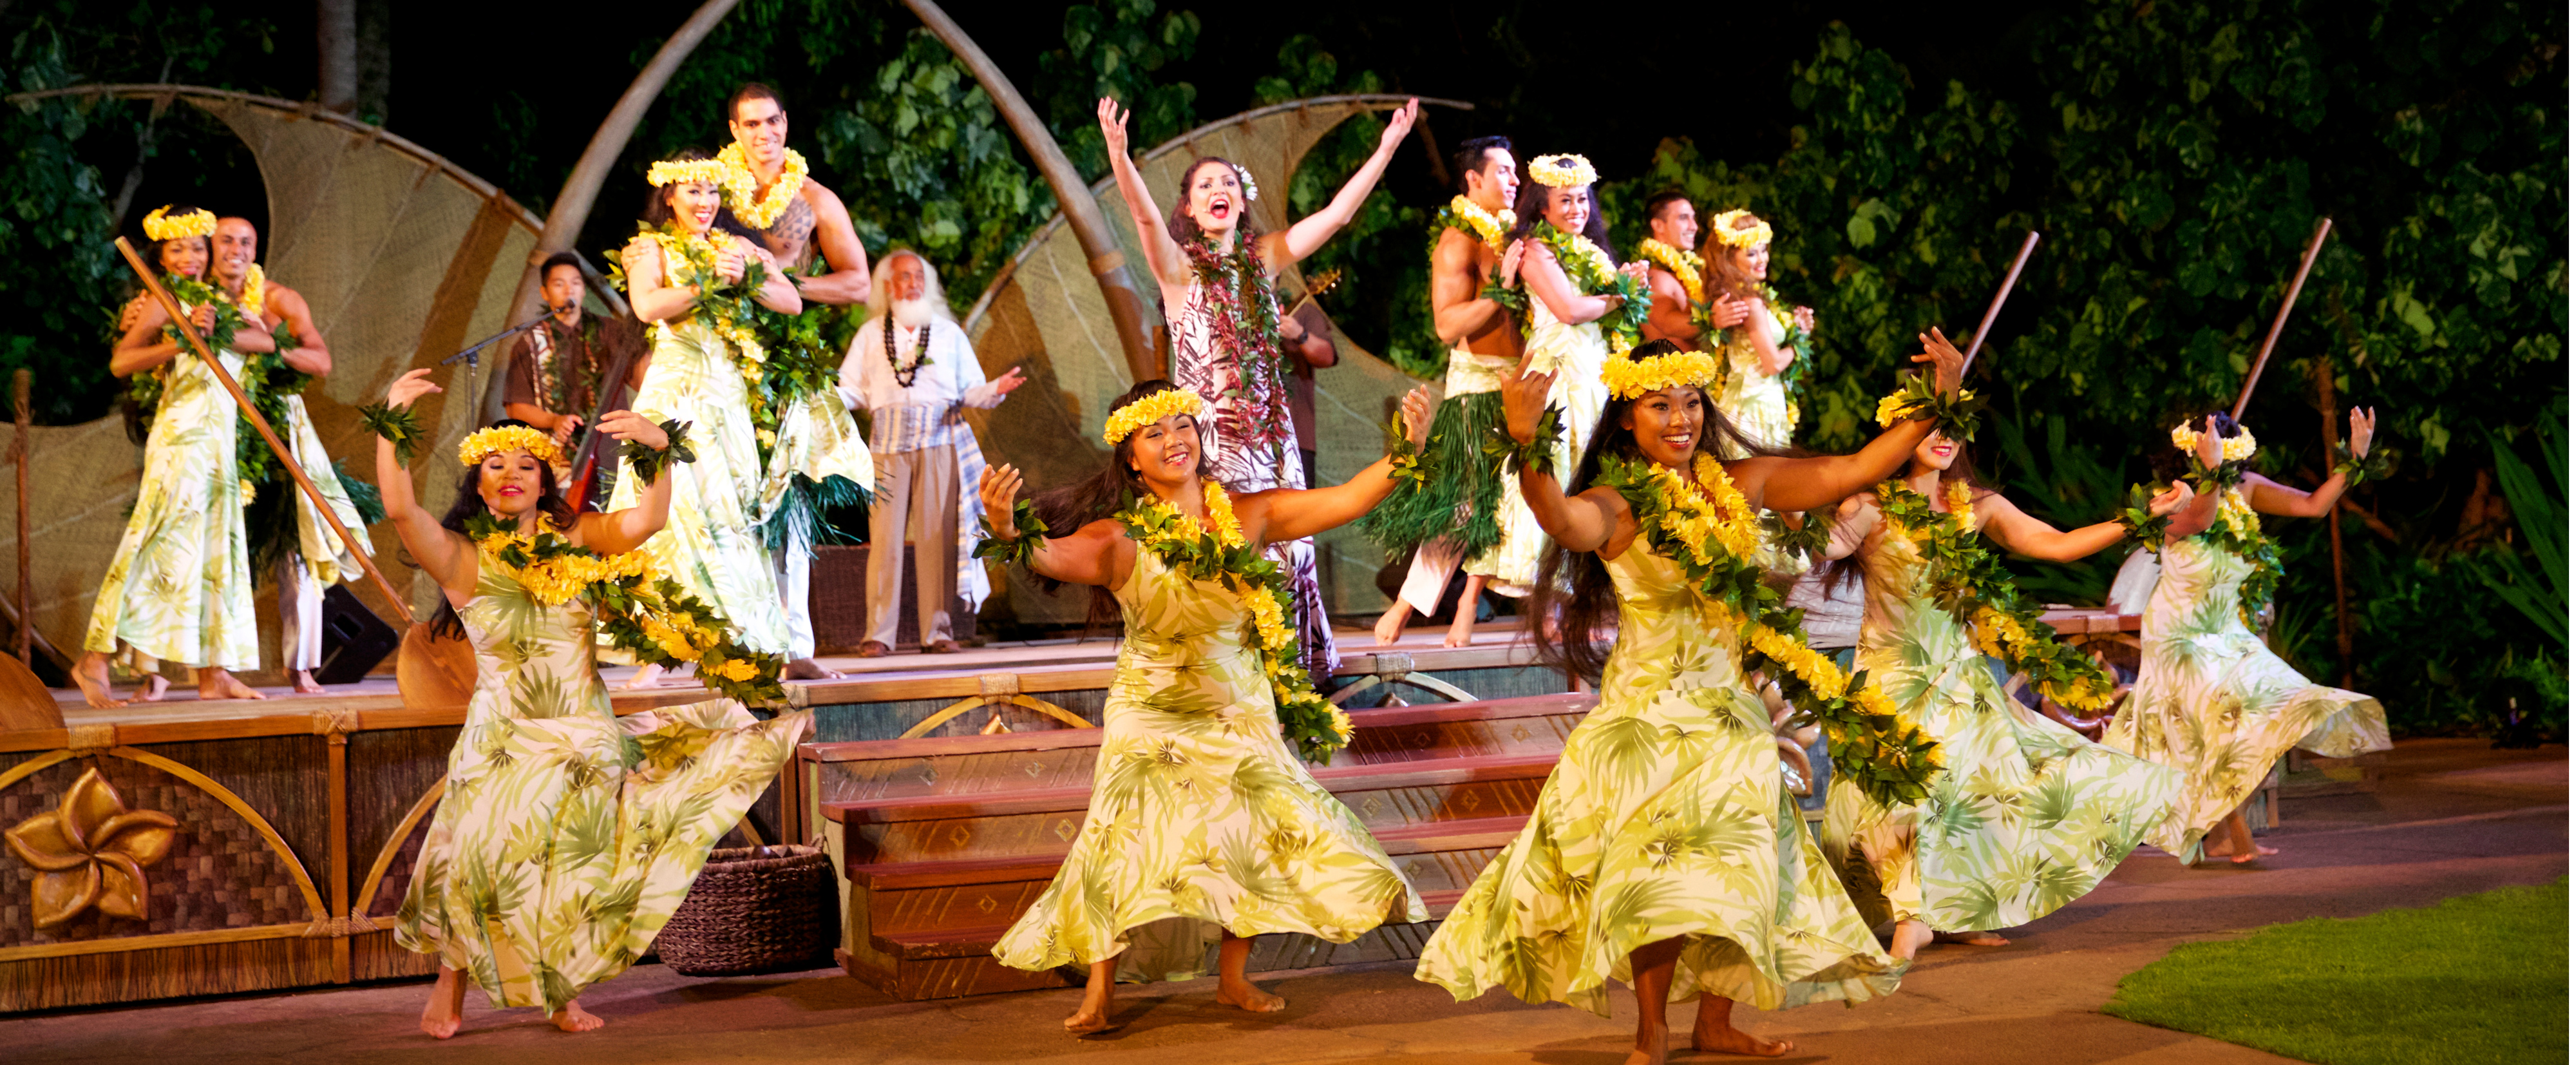 Polynesian dancers wearing palm-printed dresses, head wreaths and leis perform onstage with musicians